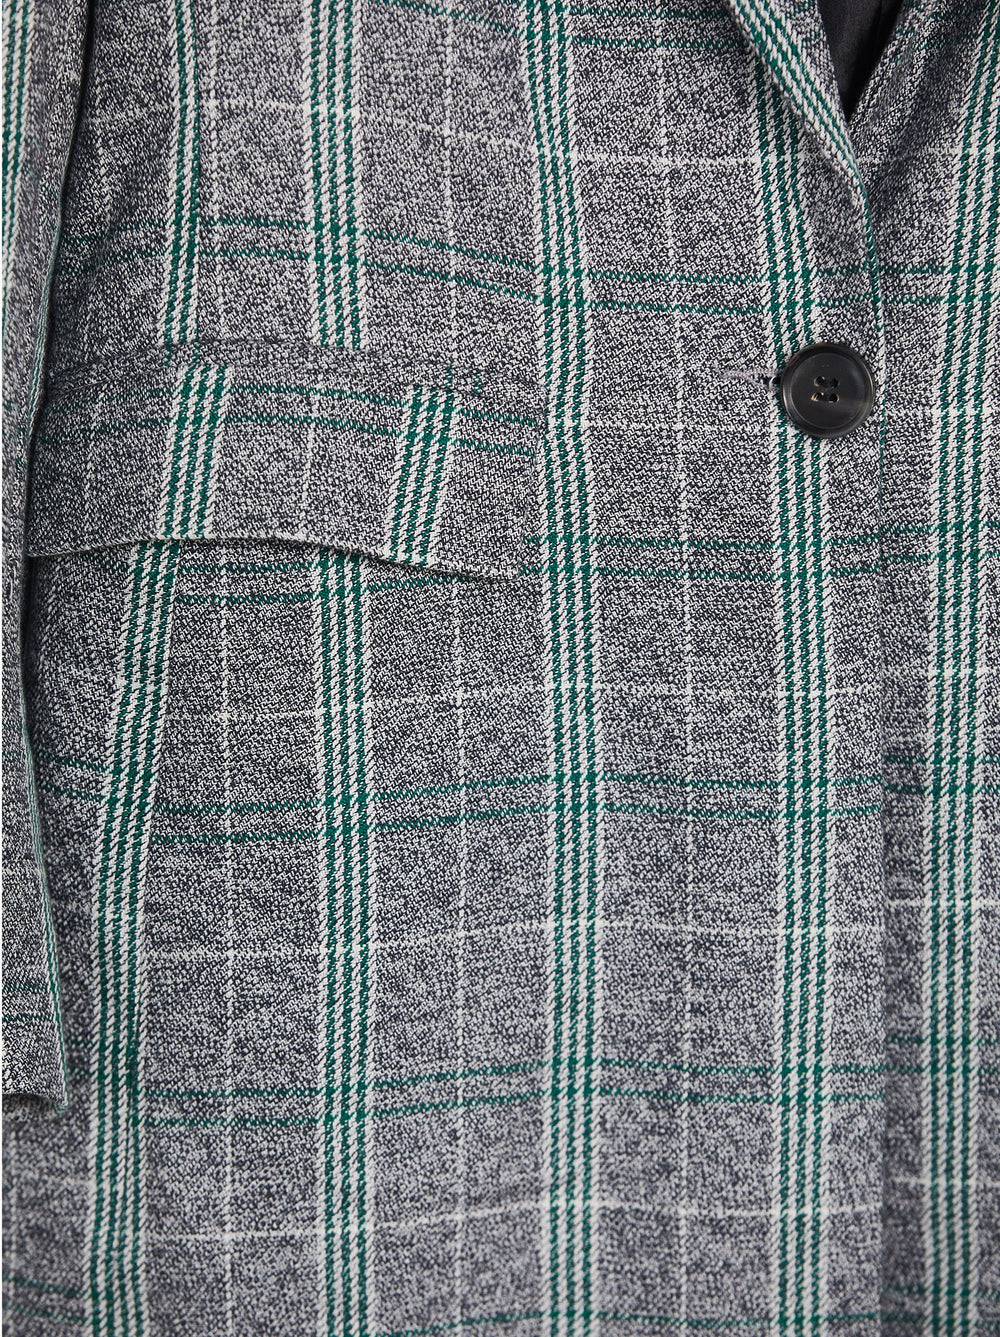 Lifestyle - Plaid Evergreen